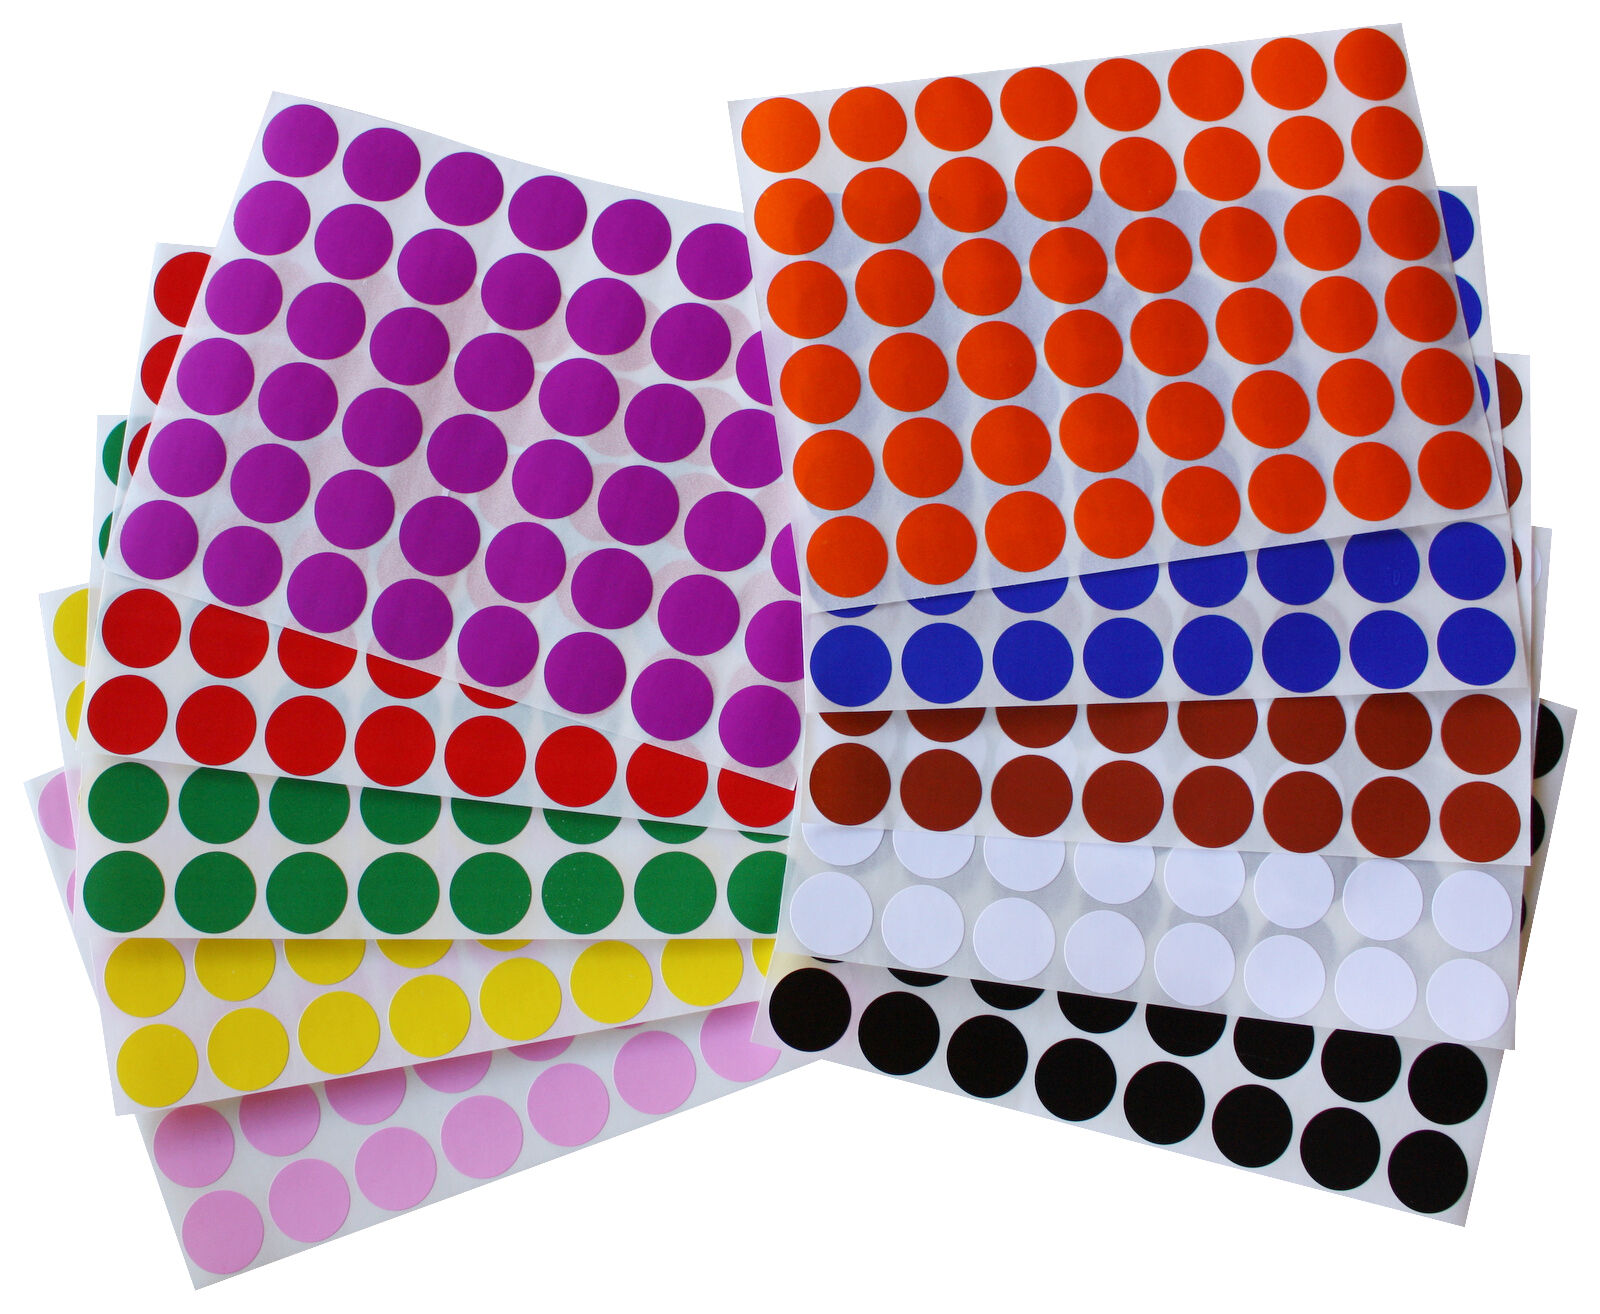 Details About 3 4 Inch Diameter 17mm Color Round Dot Stickers On Sheet Circle Labels 336 Pack